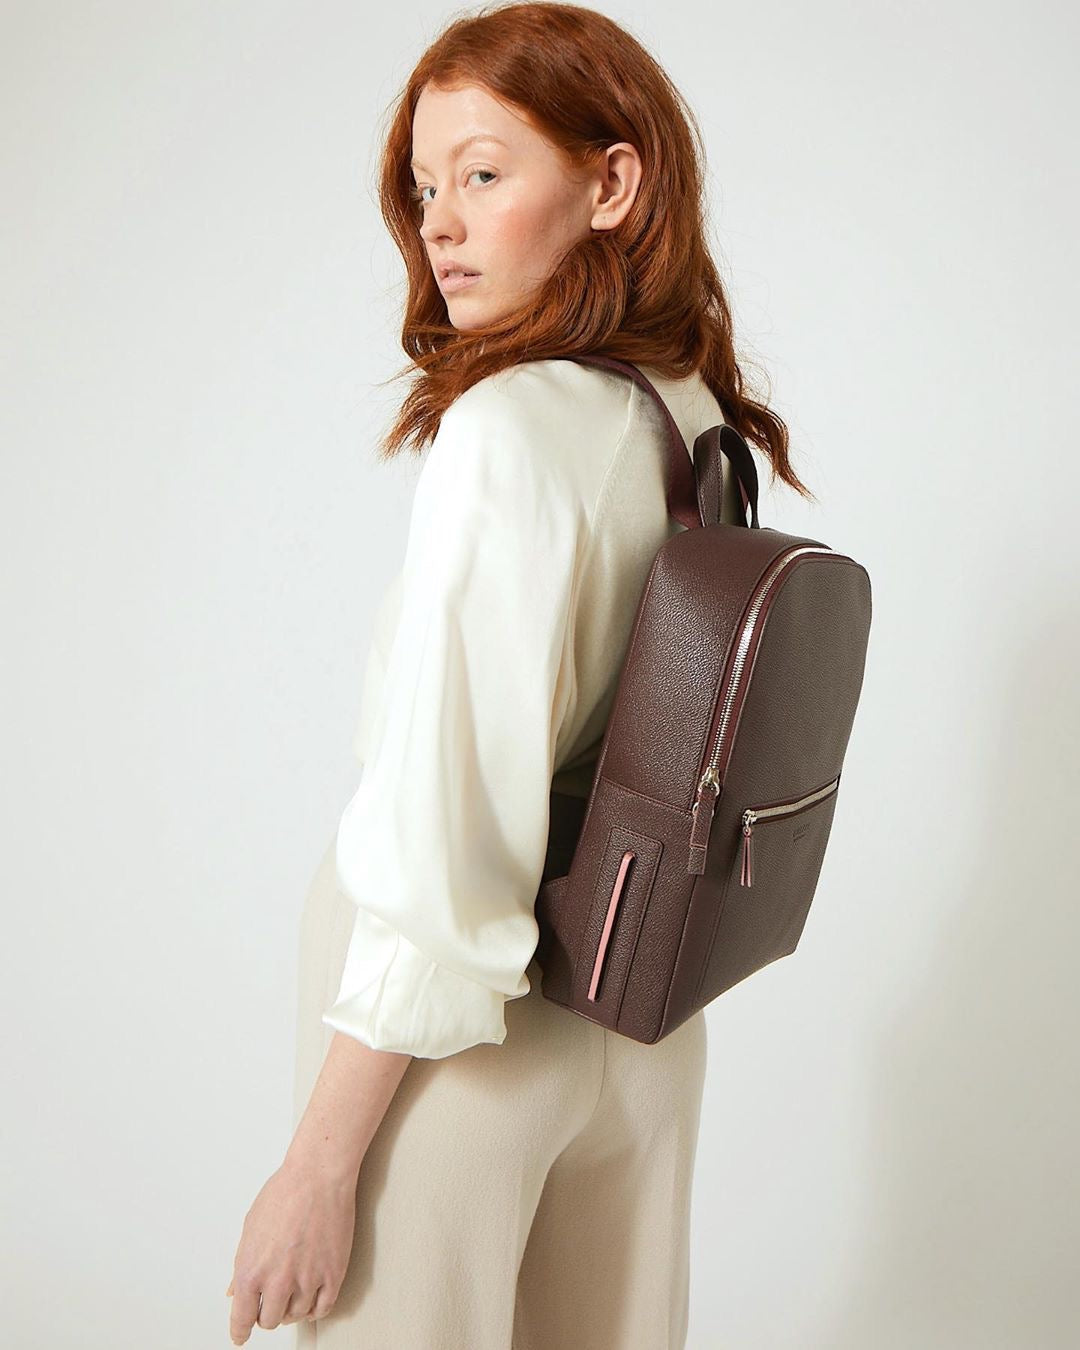 LUXTRA vegan leather bags